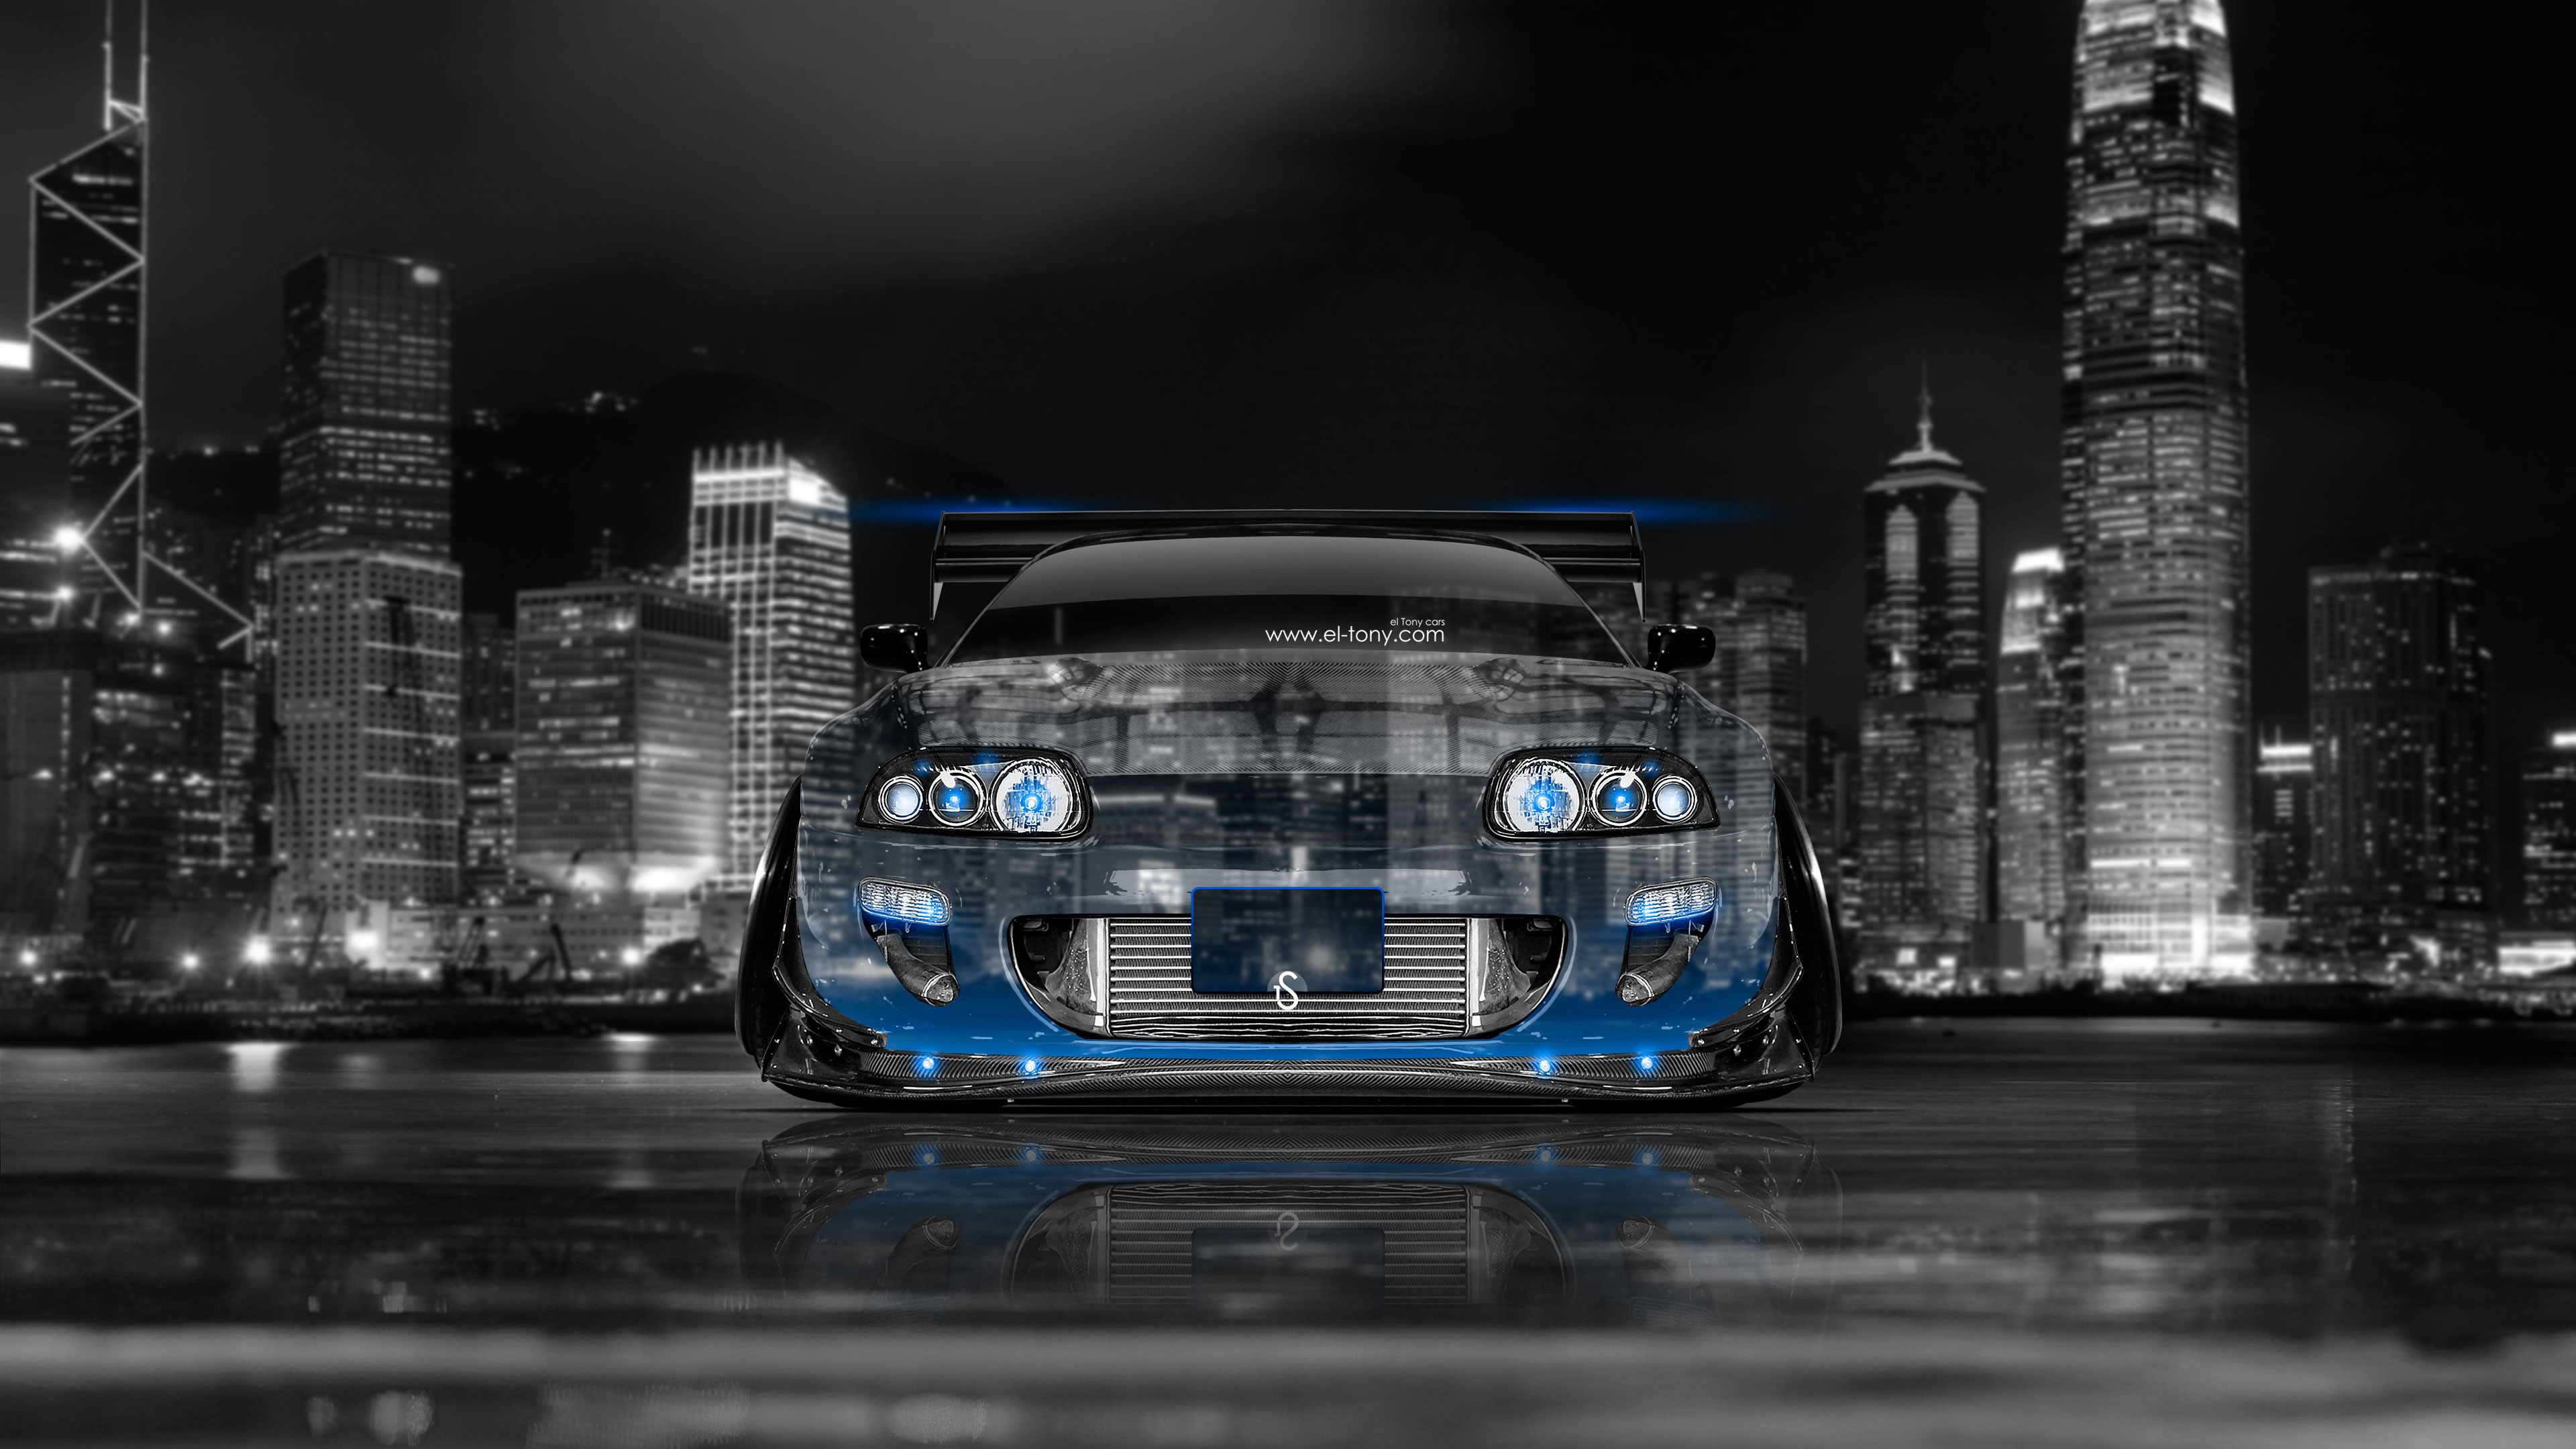 2048x1365 Toyota Supra, MR2, Nissan R32 GTR Okinawa HD Wallpaper From  Gallsource